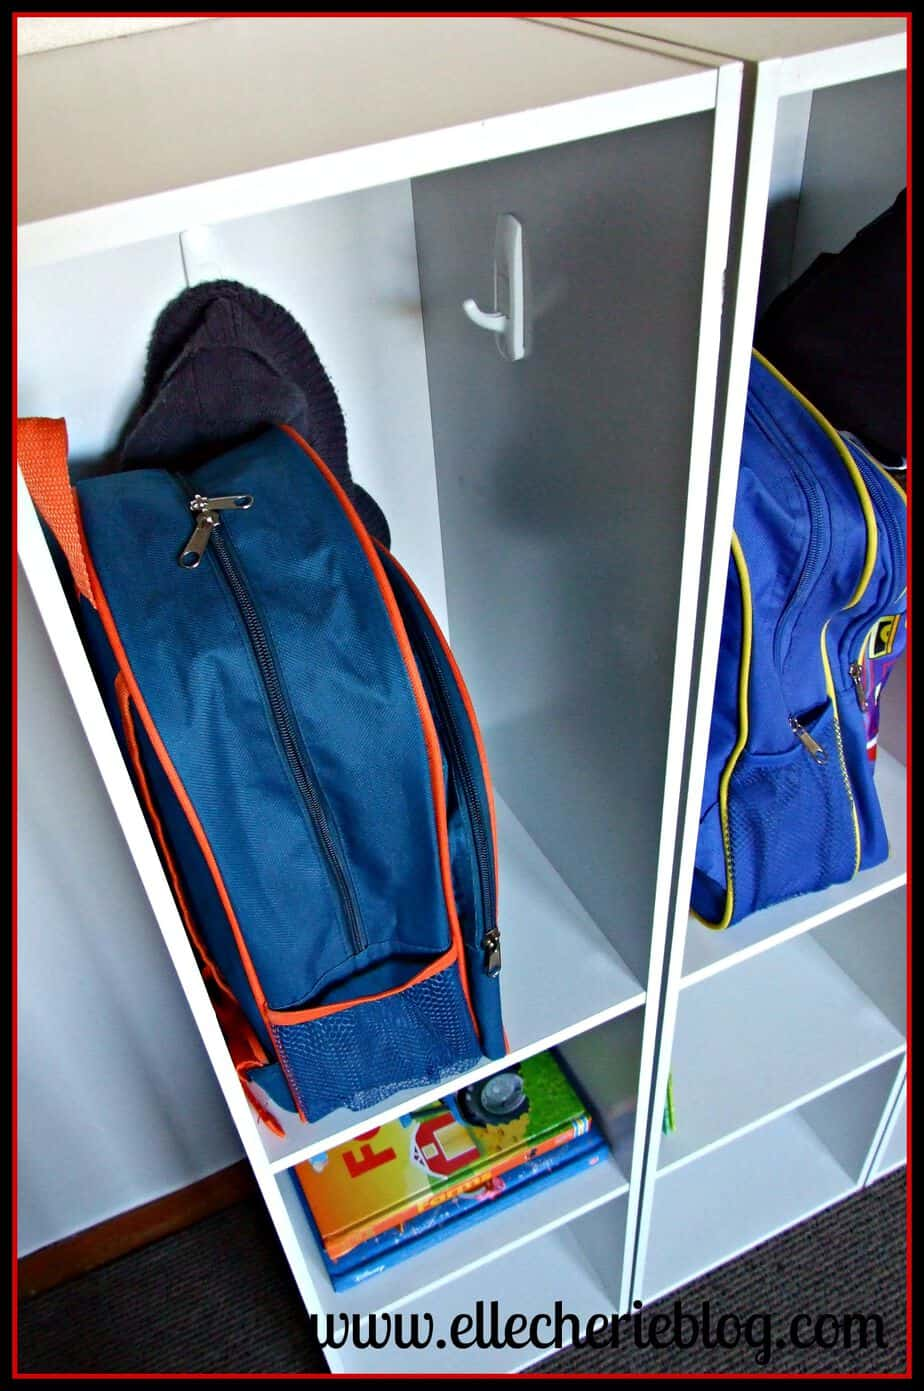 My Kids Use The Top Larger Cubby For Bags Jackets And Hats The 2nd Cubby  Down